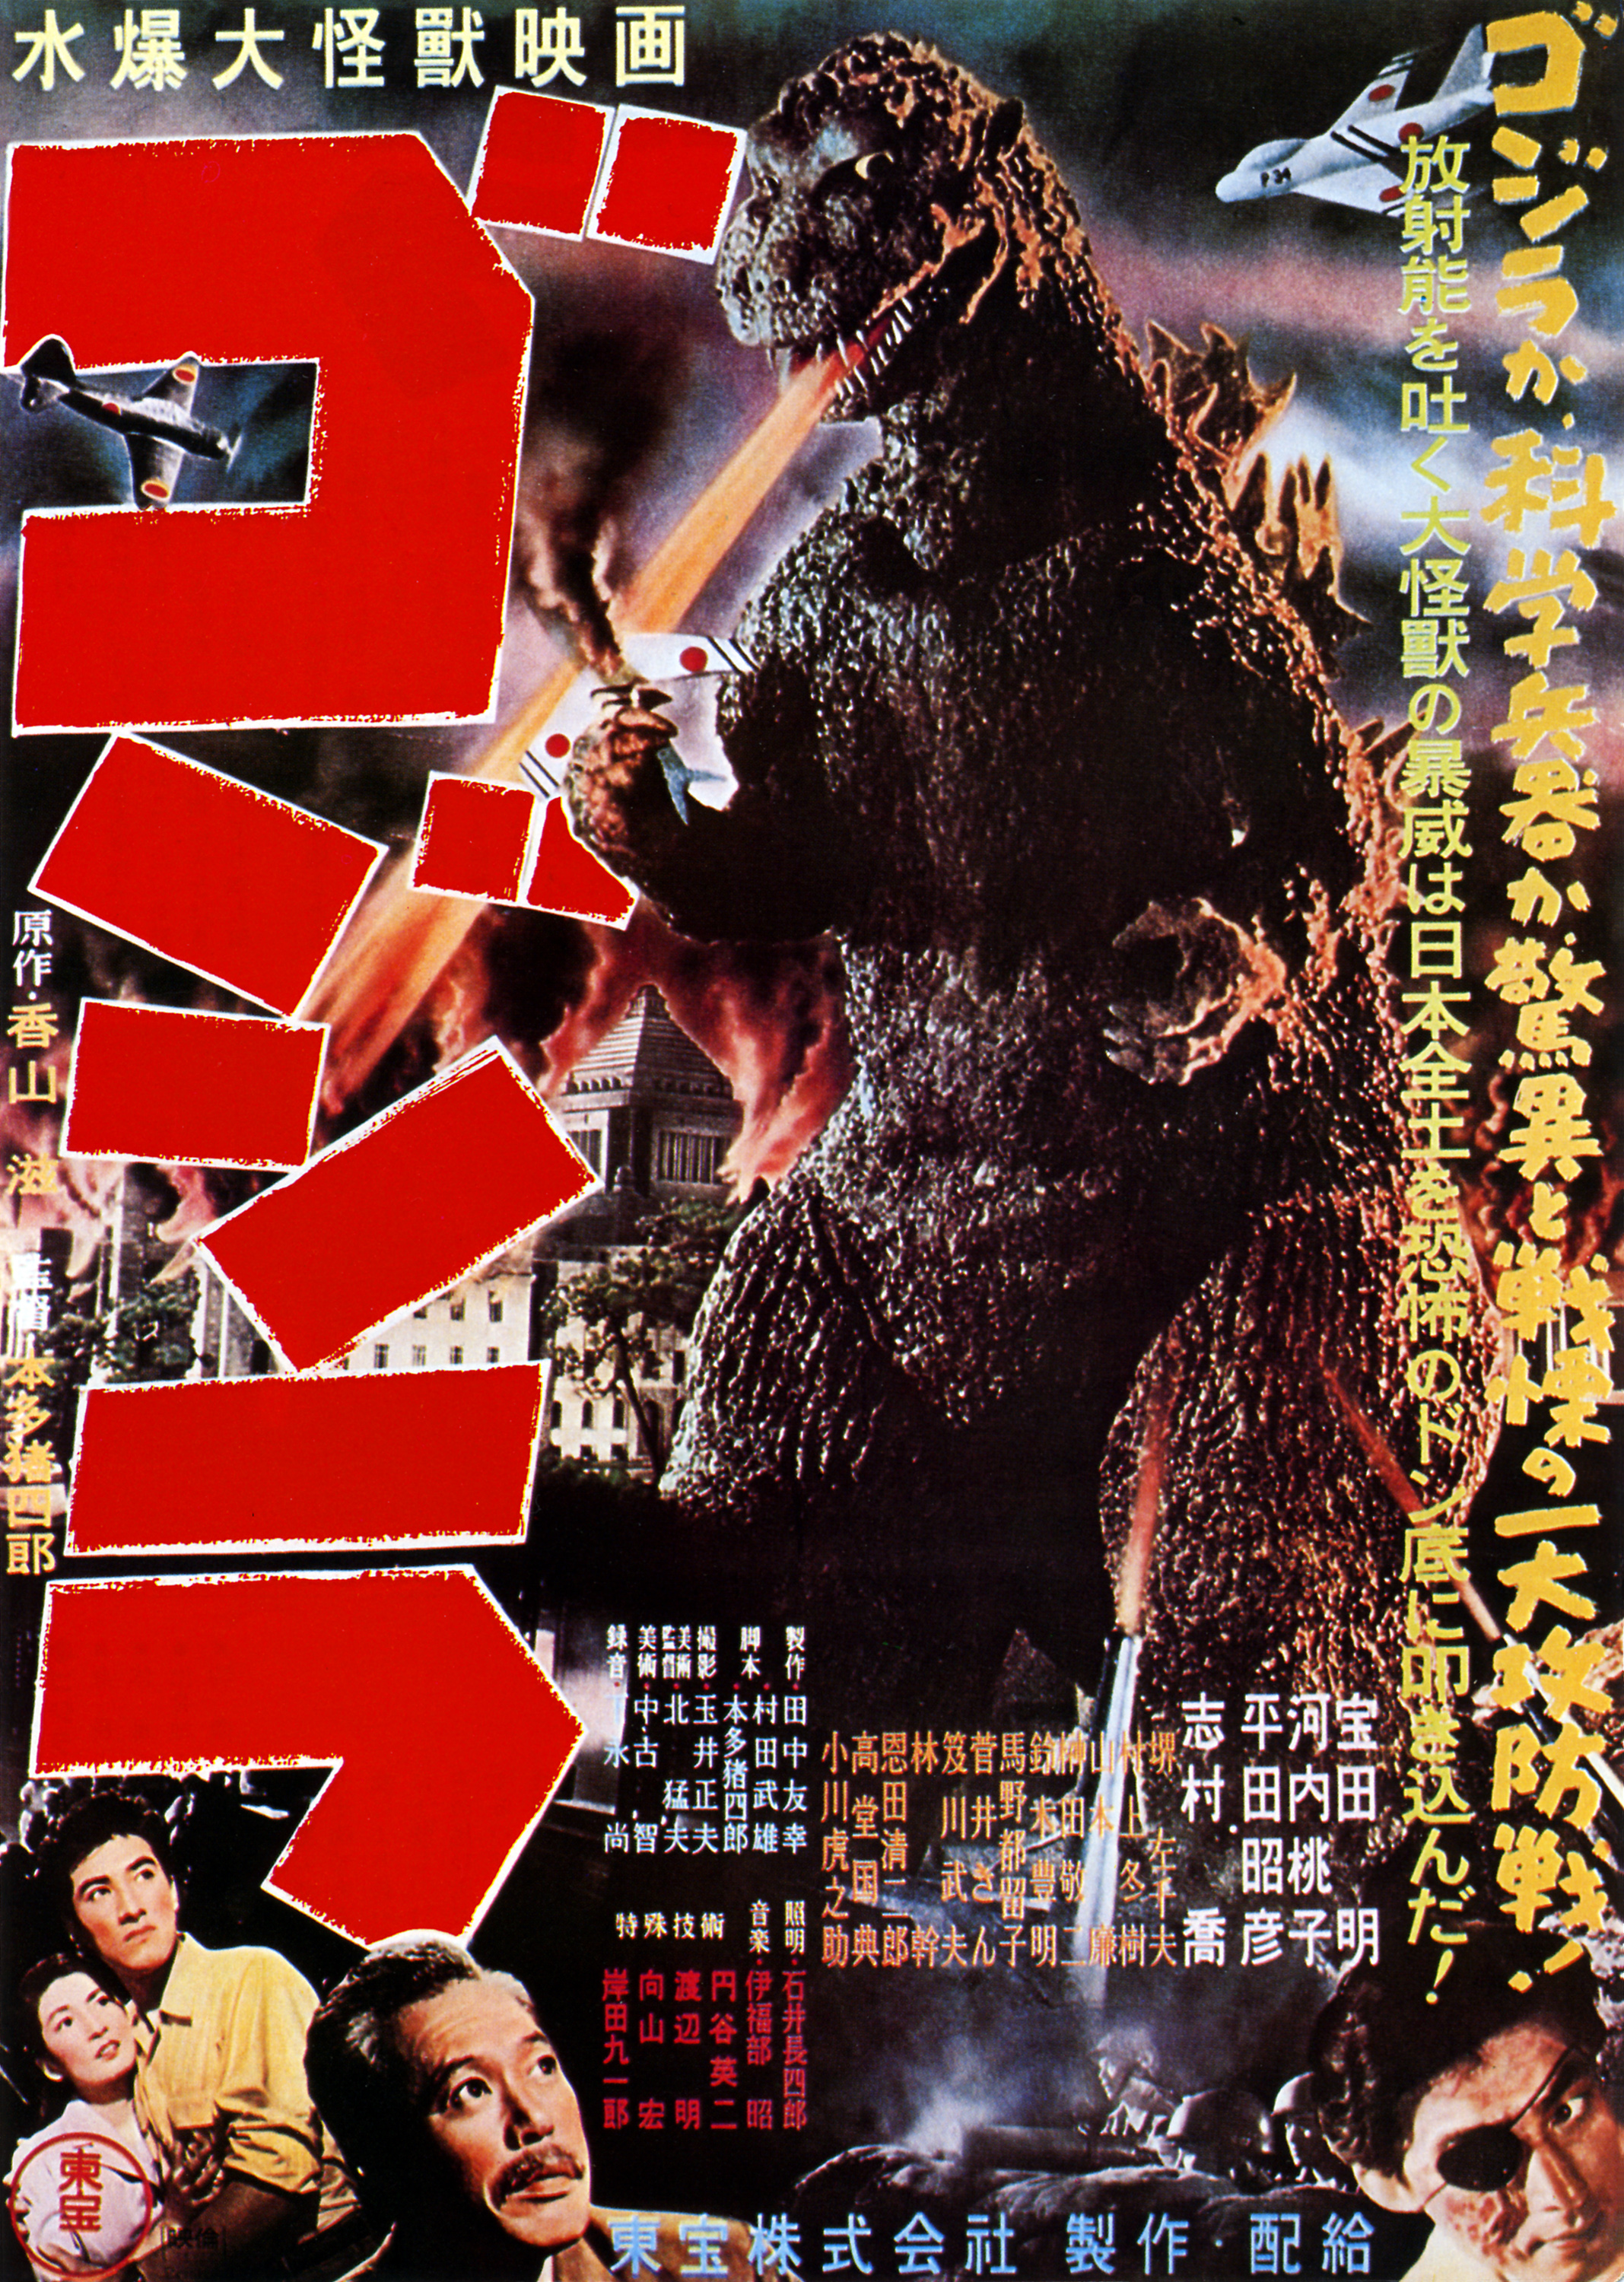 November 4th: Godzilla (1954)